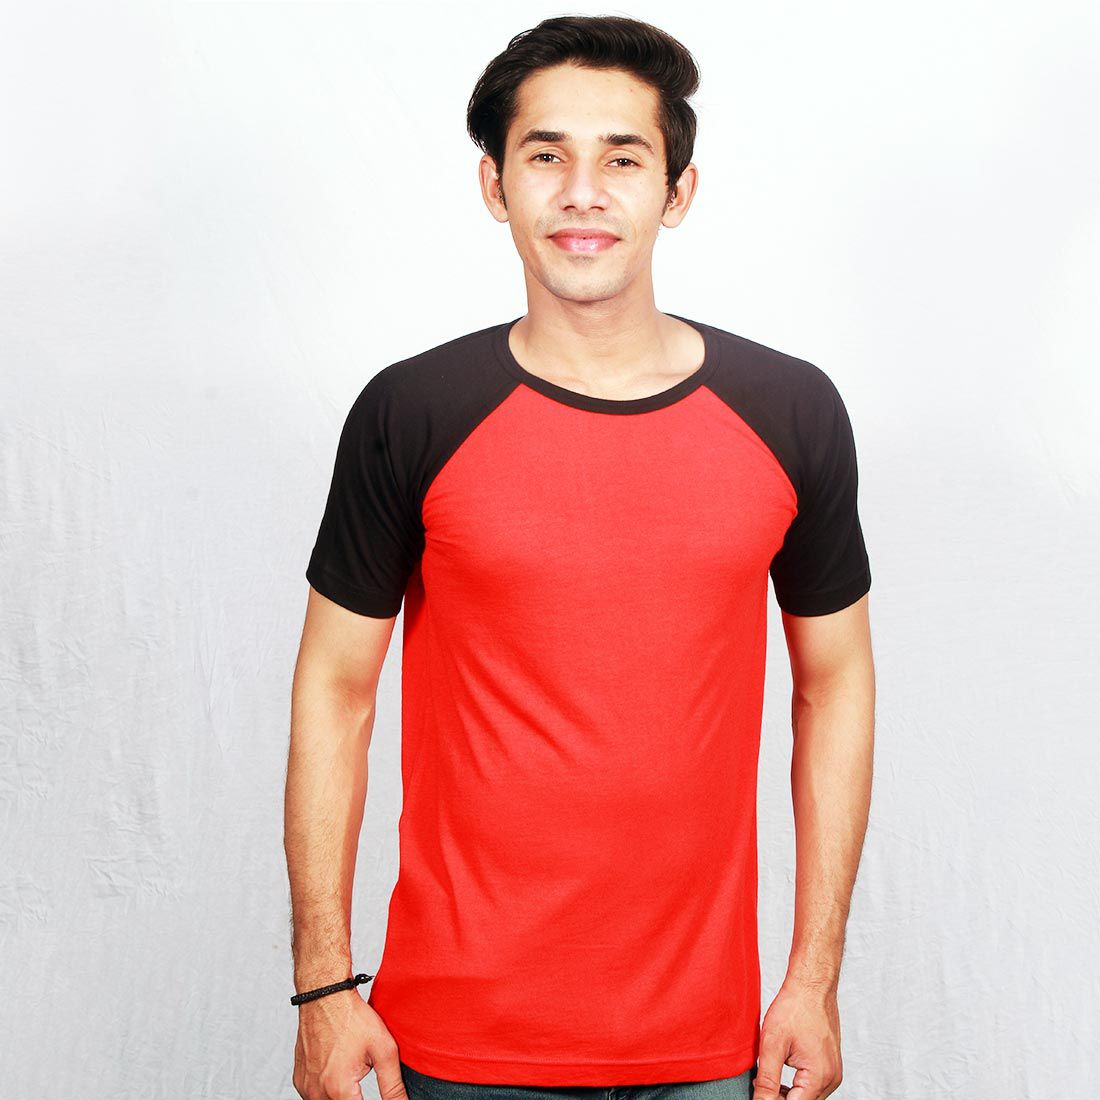 Hollane Fashion Ware Multi Round T-Shirt